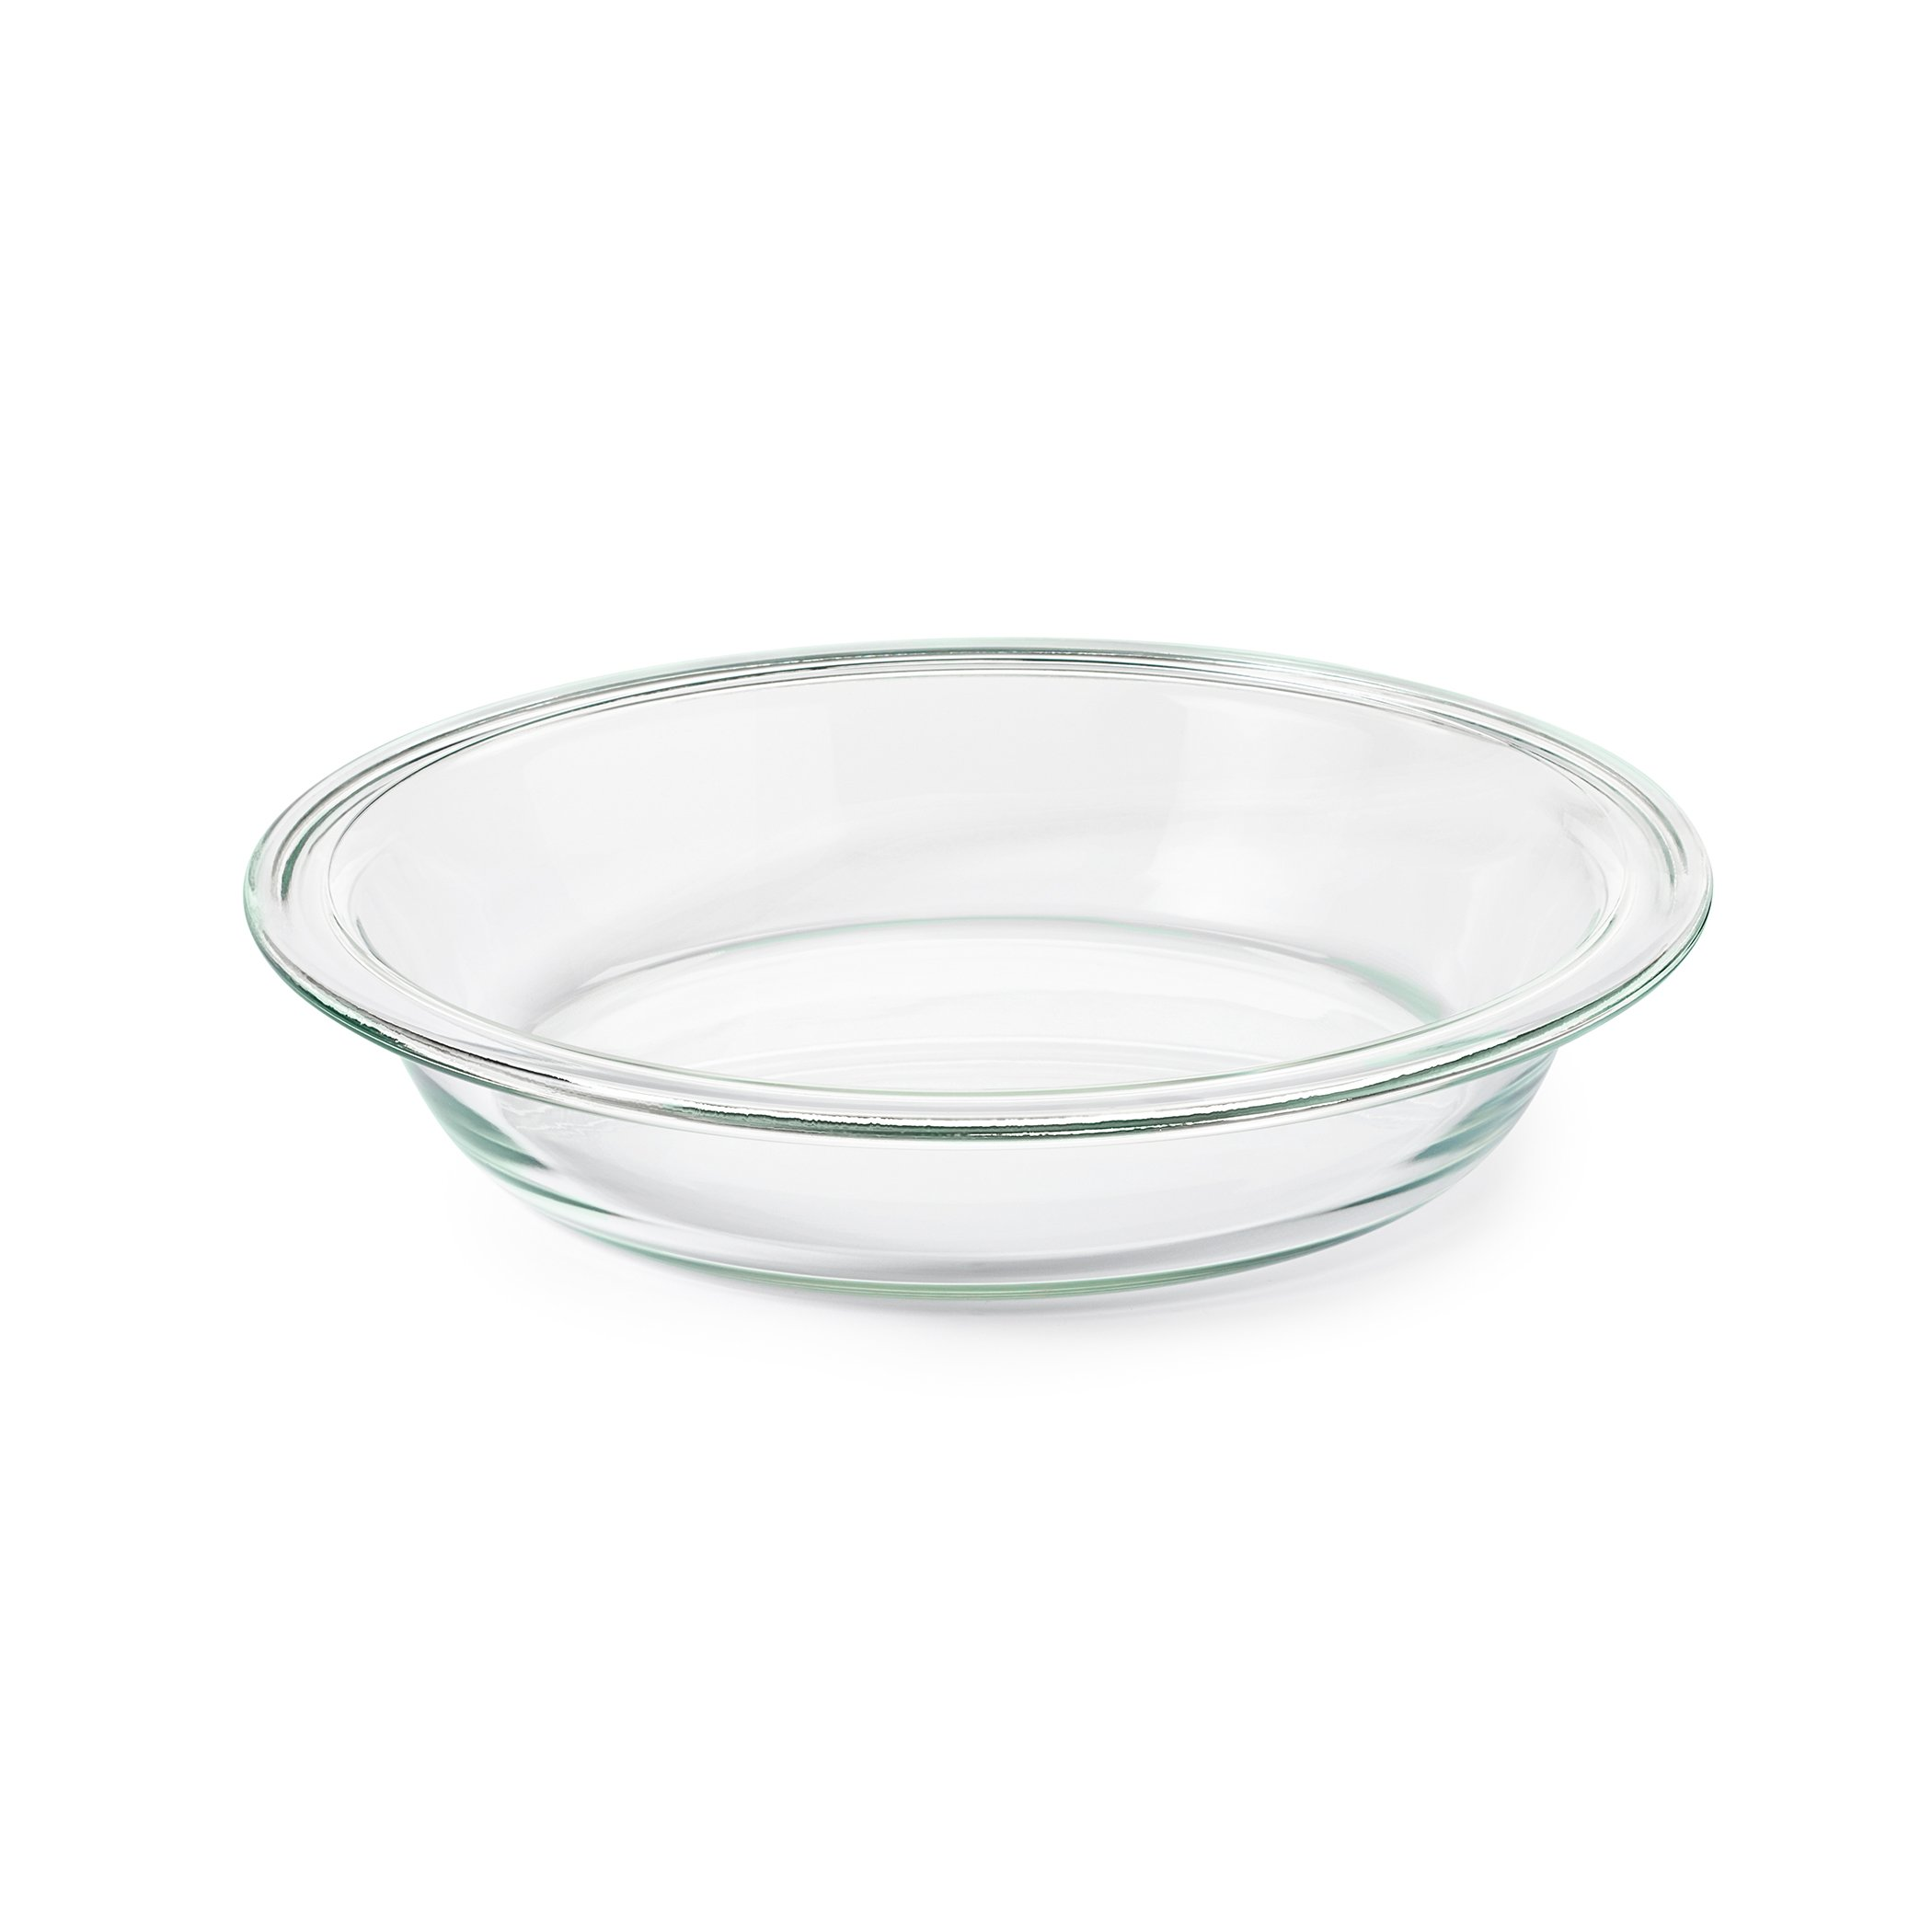 OXO Good Grips Freezer-to-Oven Safe Glass 9'' Pie Plate